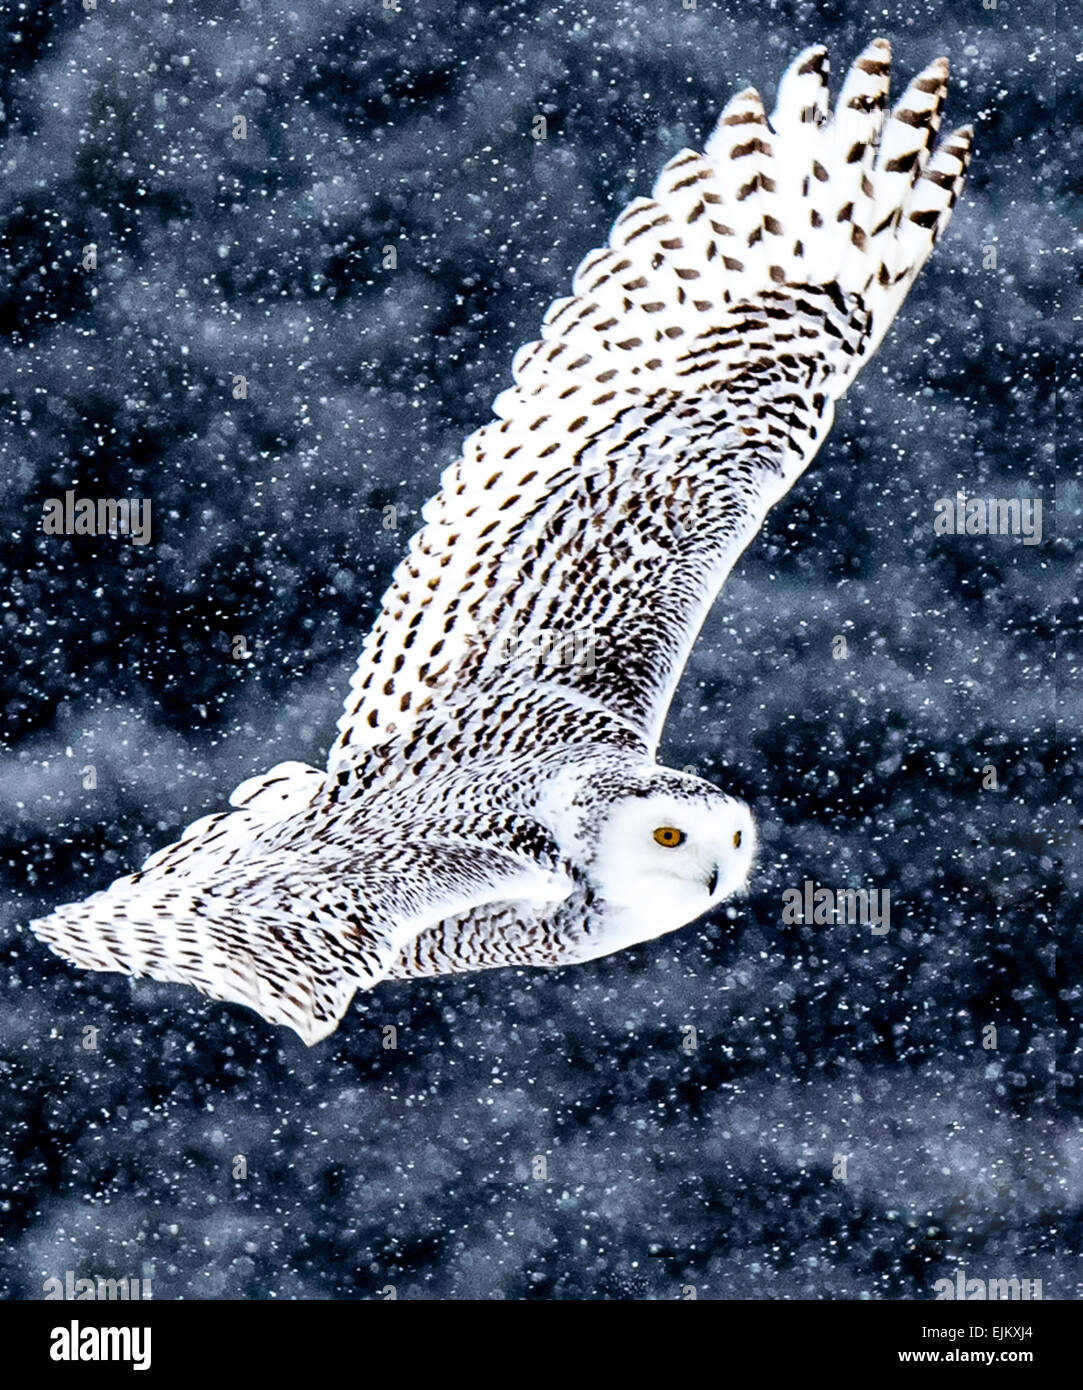 Snowy Owls can be seen roaming fields looking for food during the winter months. - Stock Image